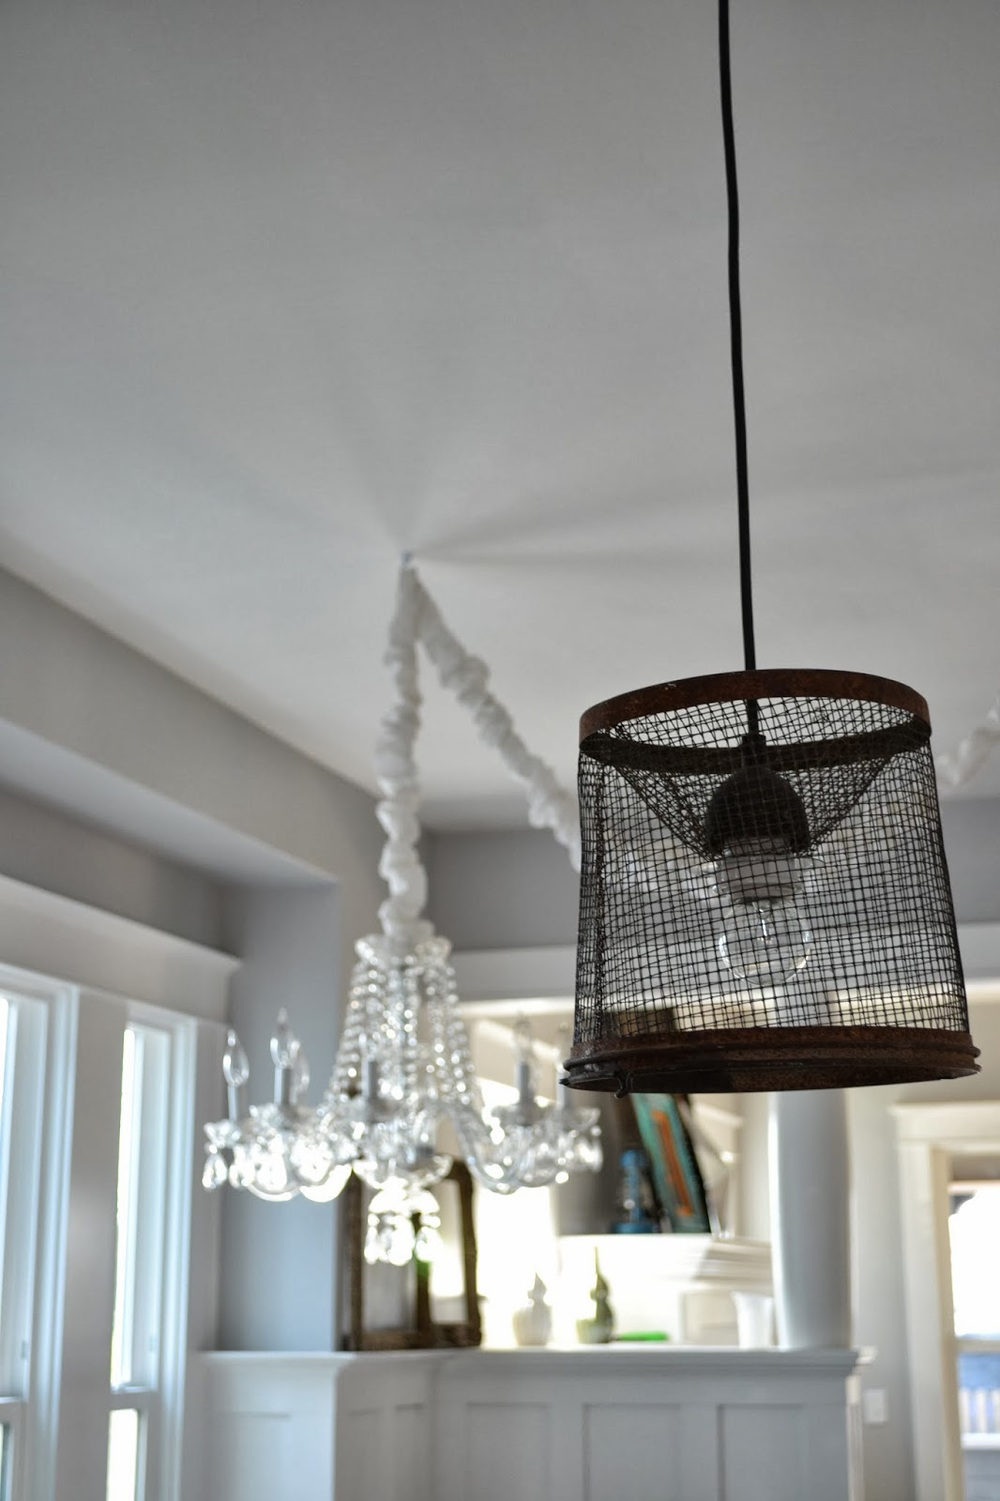 All I Had To Do To Get Them To Fit Was Buy A Reducing Washer, And Wallah,  Totally Unique Pendant Light Fixtures For Under $20 Each!